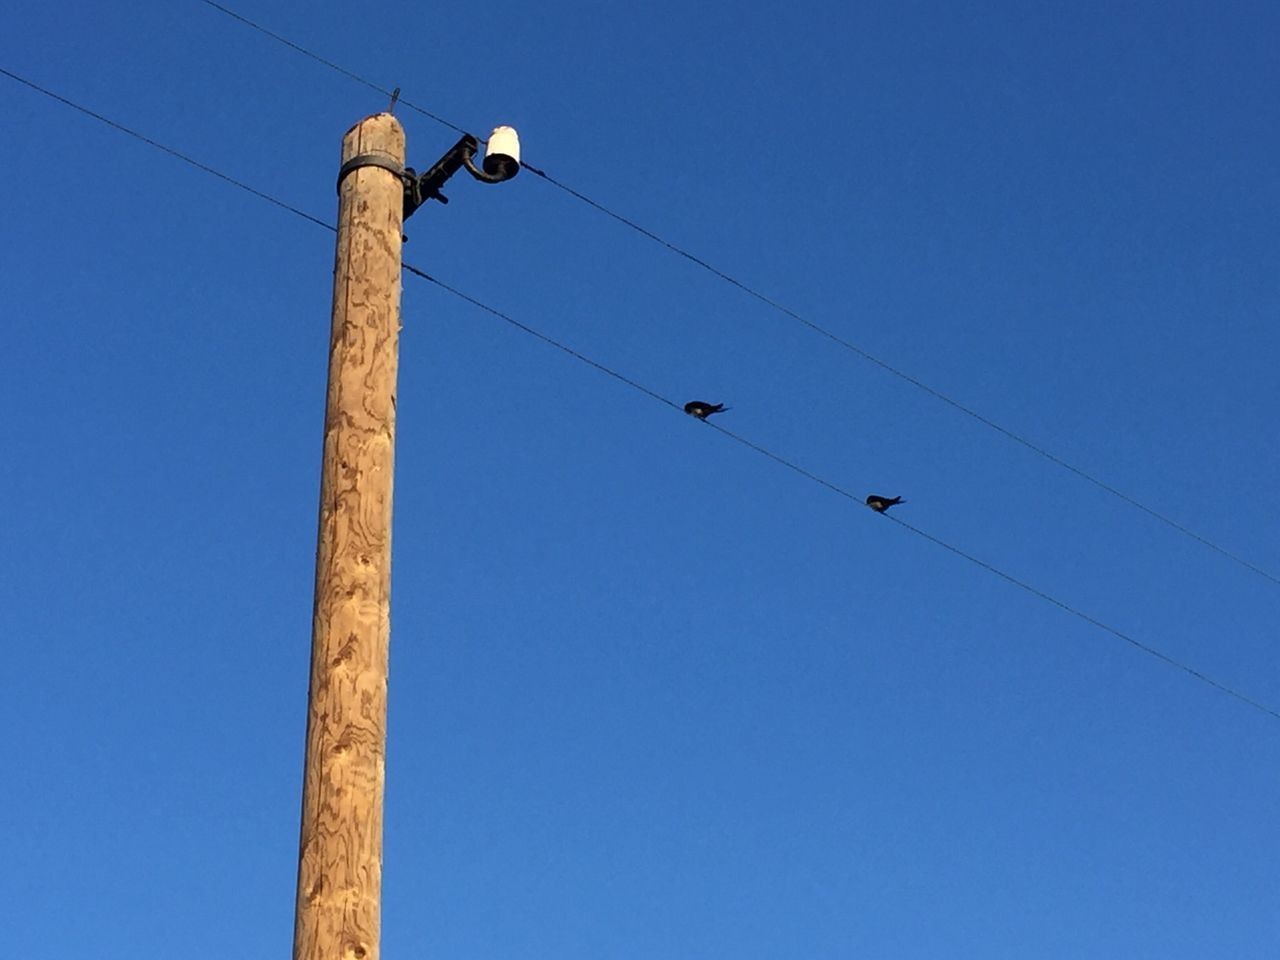 Low Angle View Of Birds Perching On Telephone Line